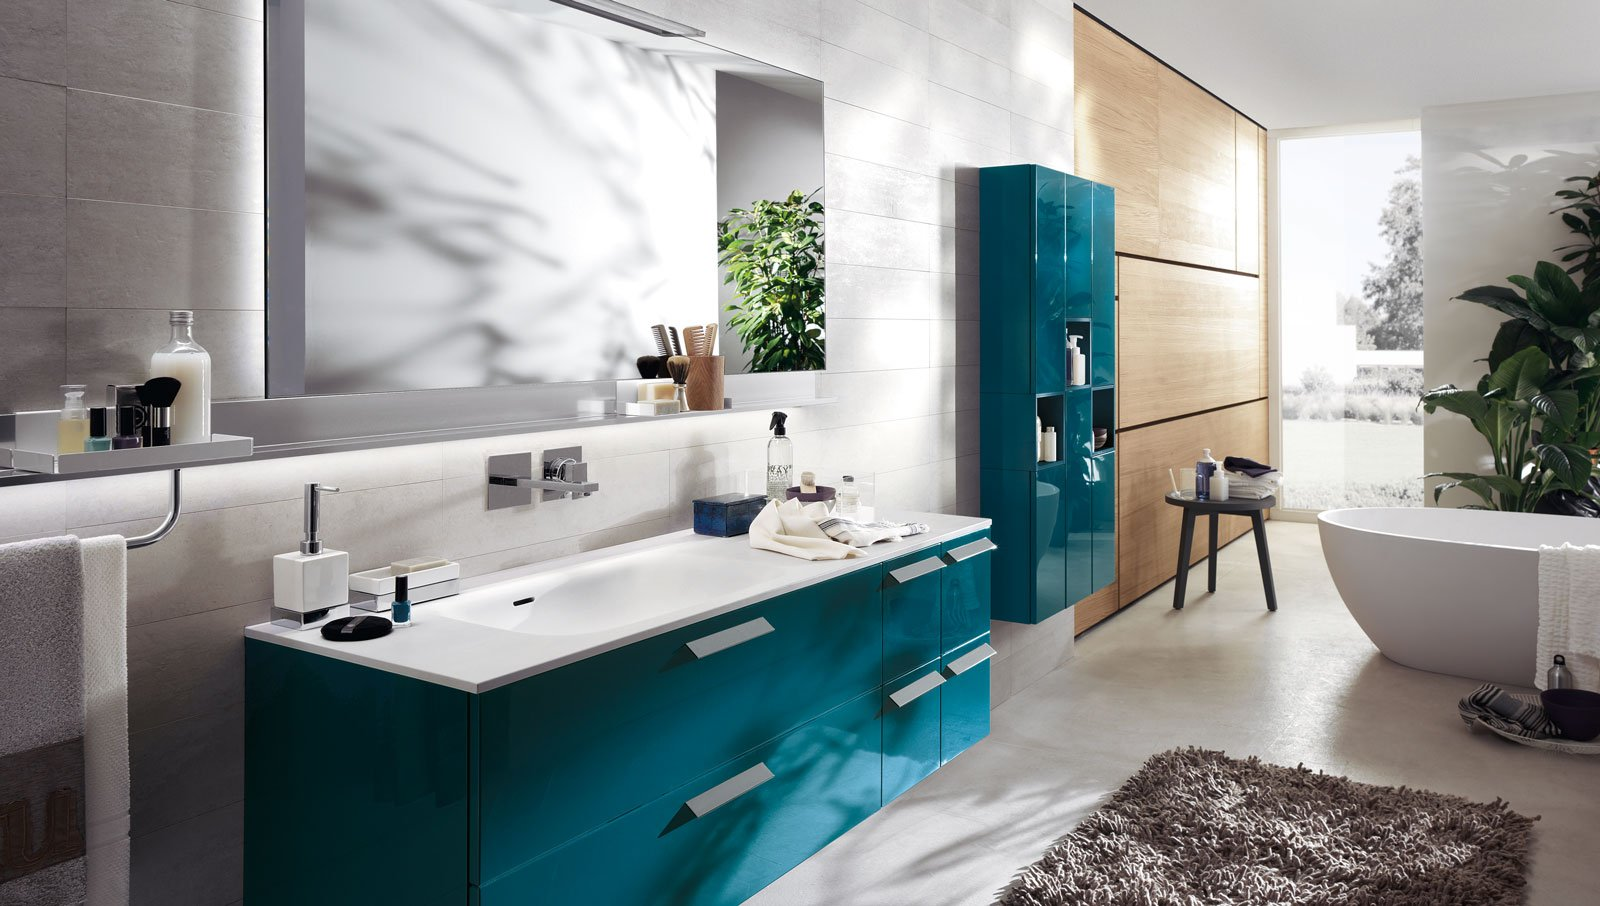 In bagno superfici in solid surface per piani lavabi for Piani di casa eplans